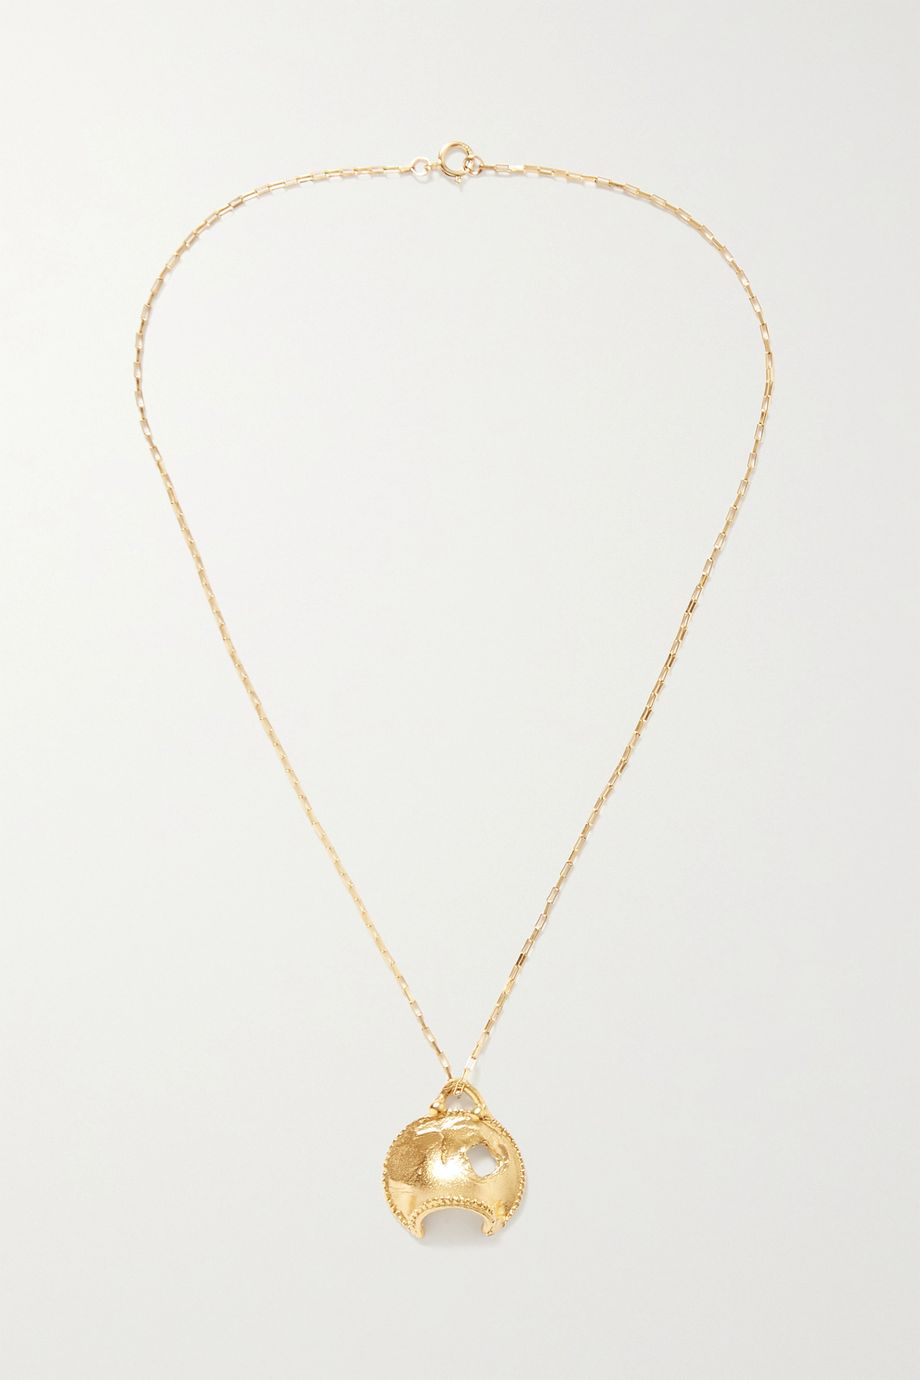 Alighieri La Forza gold-plated necklace